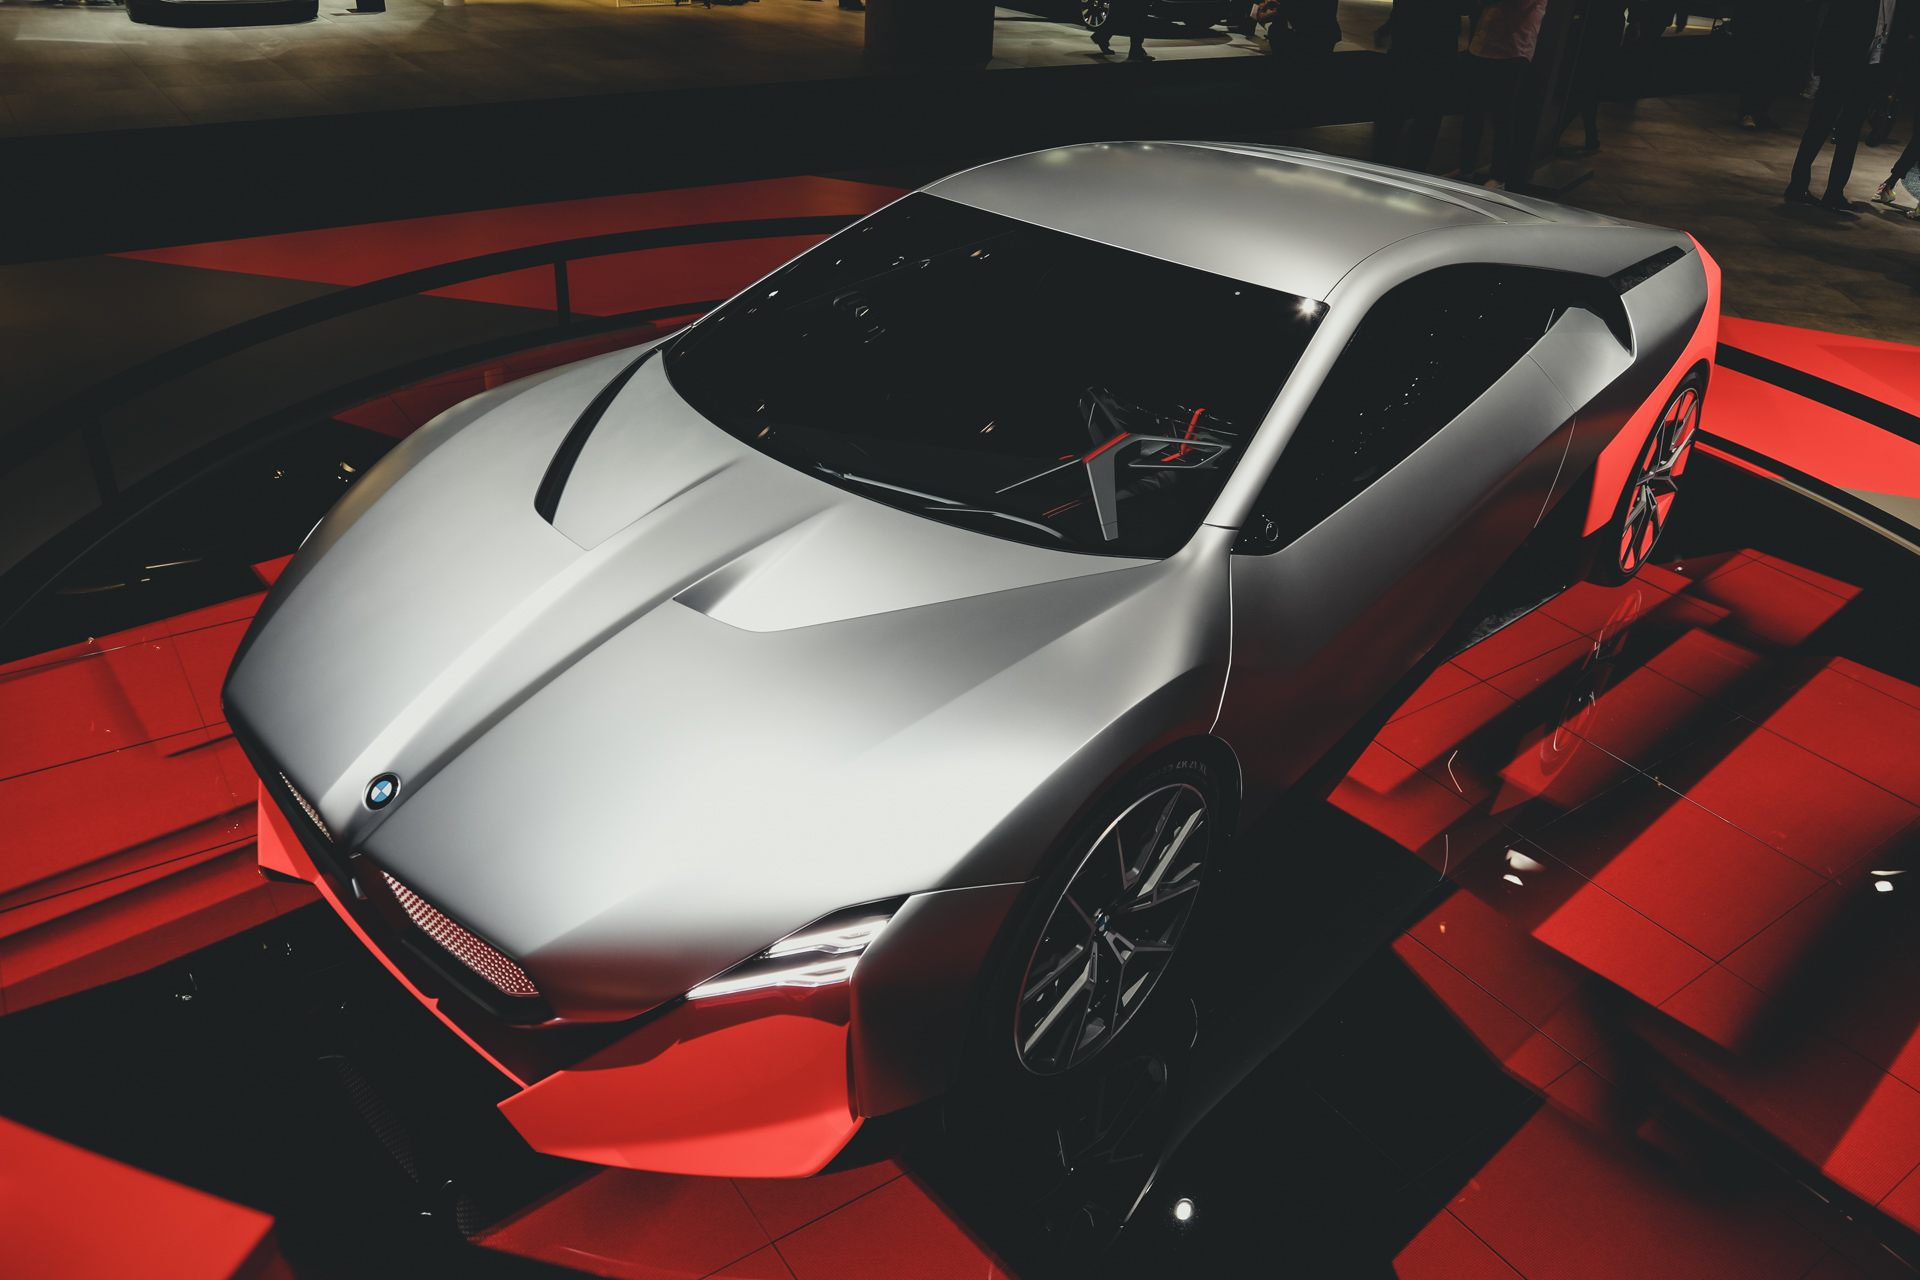 2019 IAA: BMW Vision M Next is one of the stars at the show